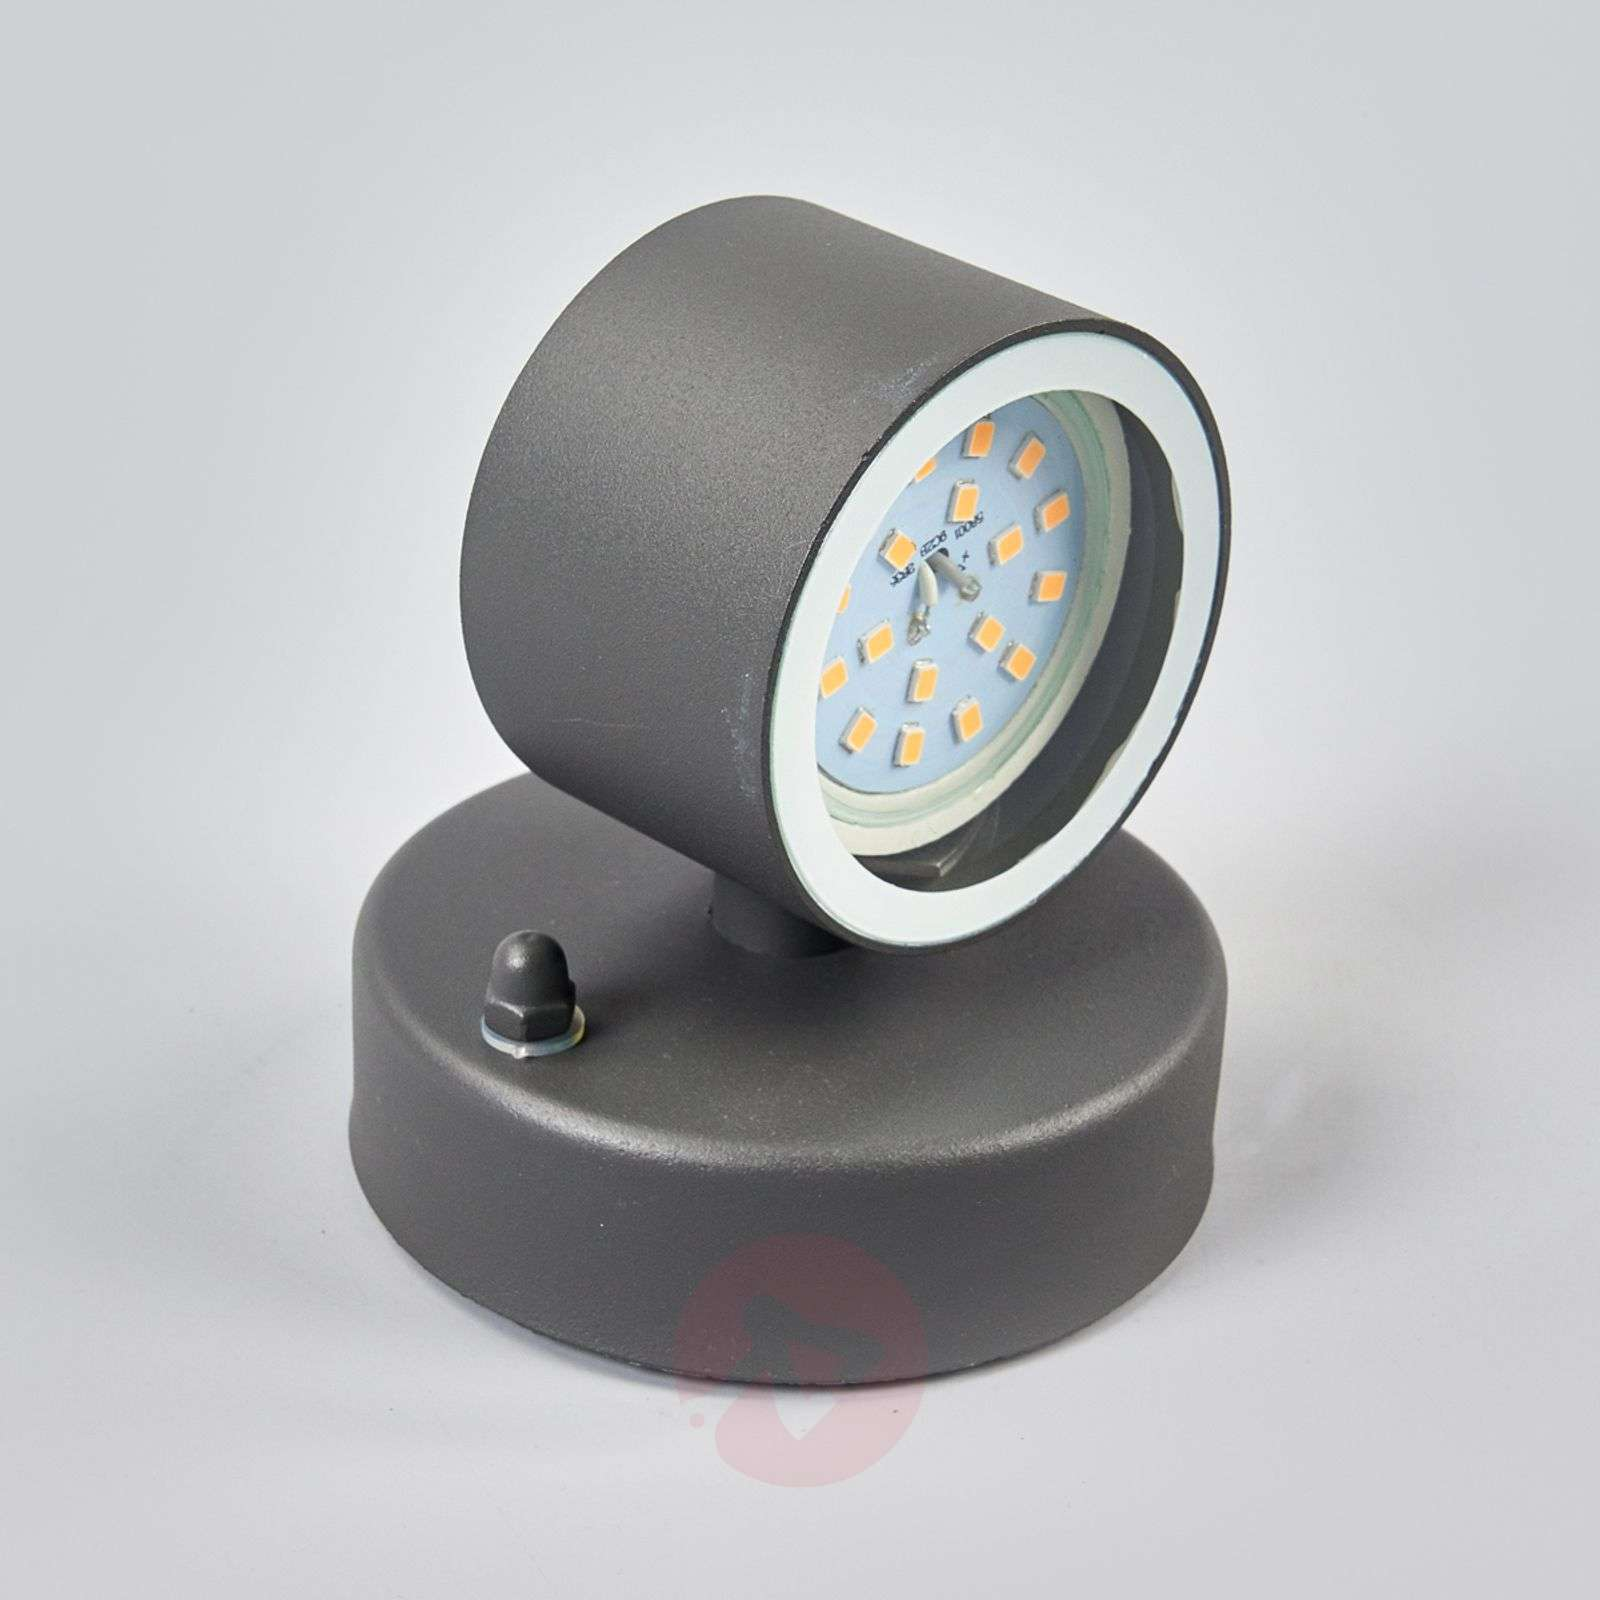 Graphite grey LED outdoor wall lamp Lexi-9977003-08